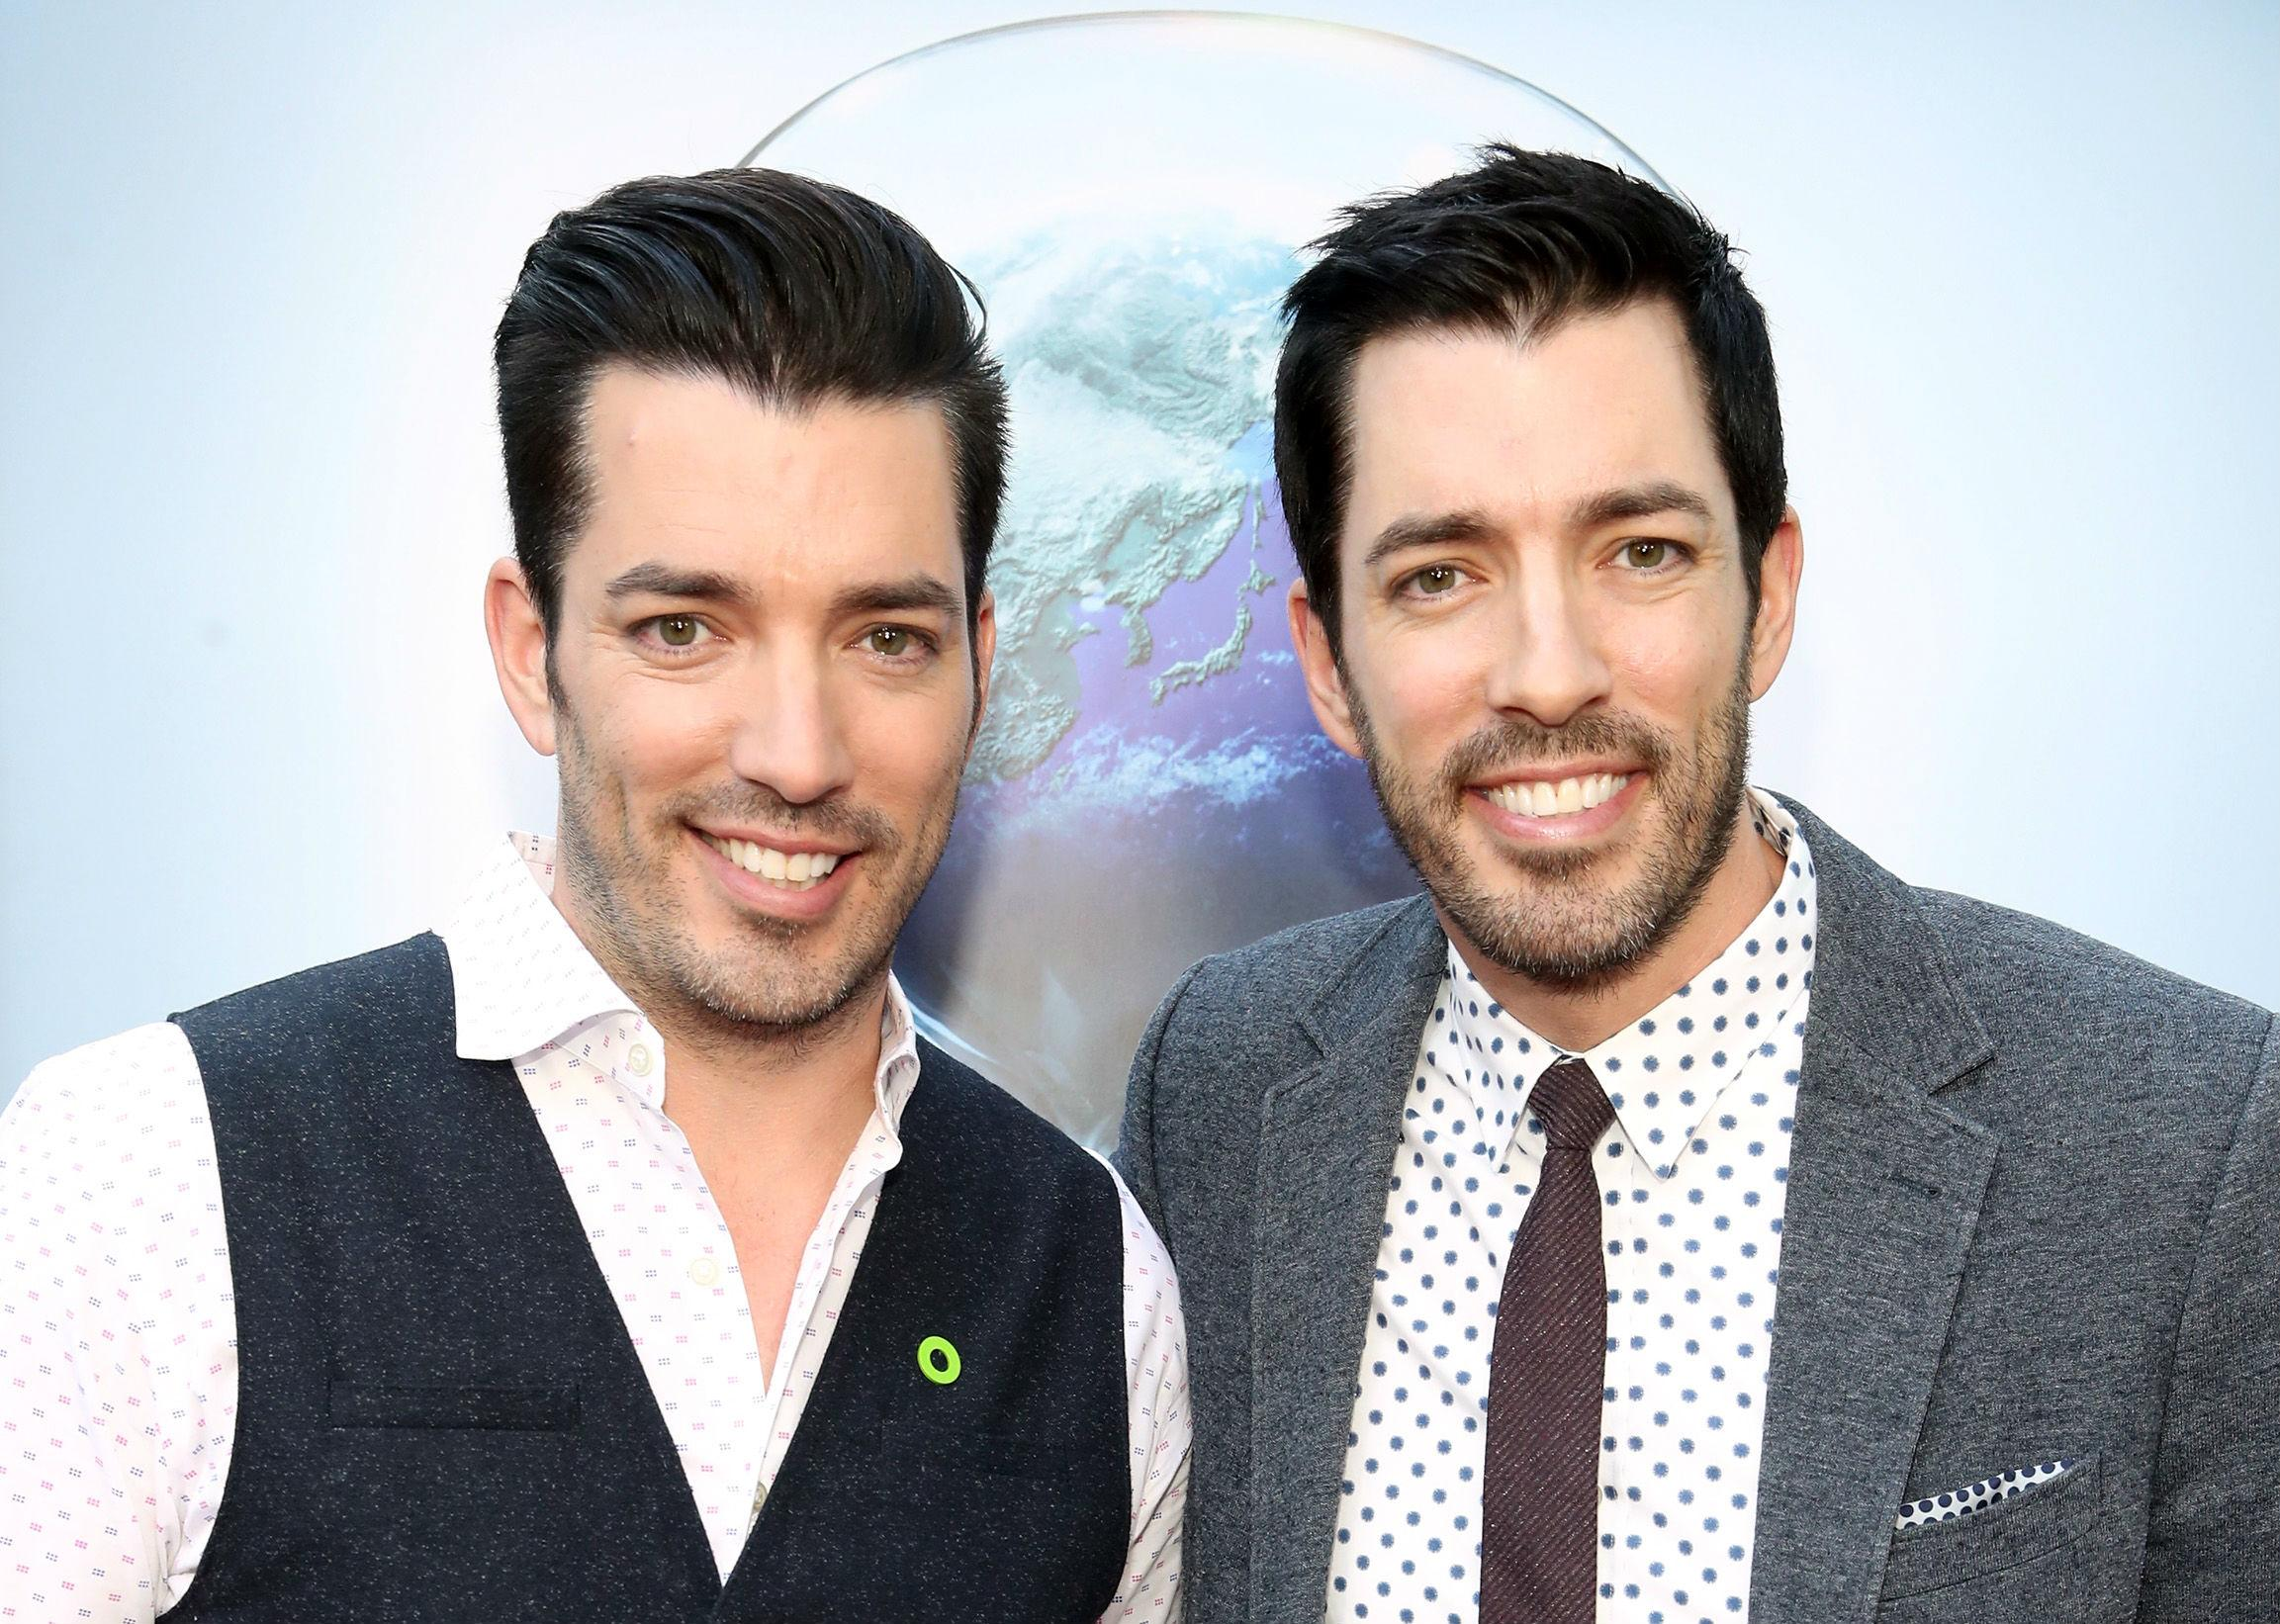 'Property Brothers' star Drew Scott joins 'Dancing with the Stars' cast